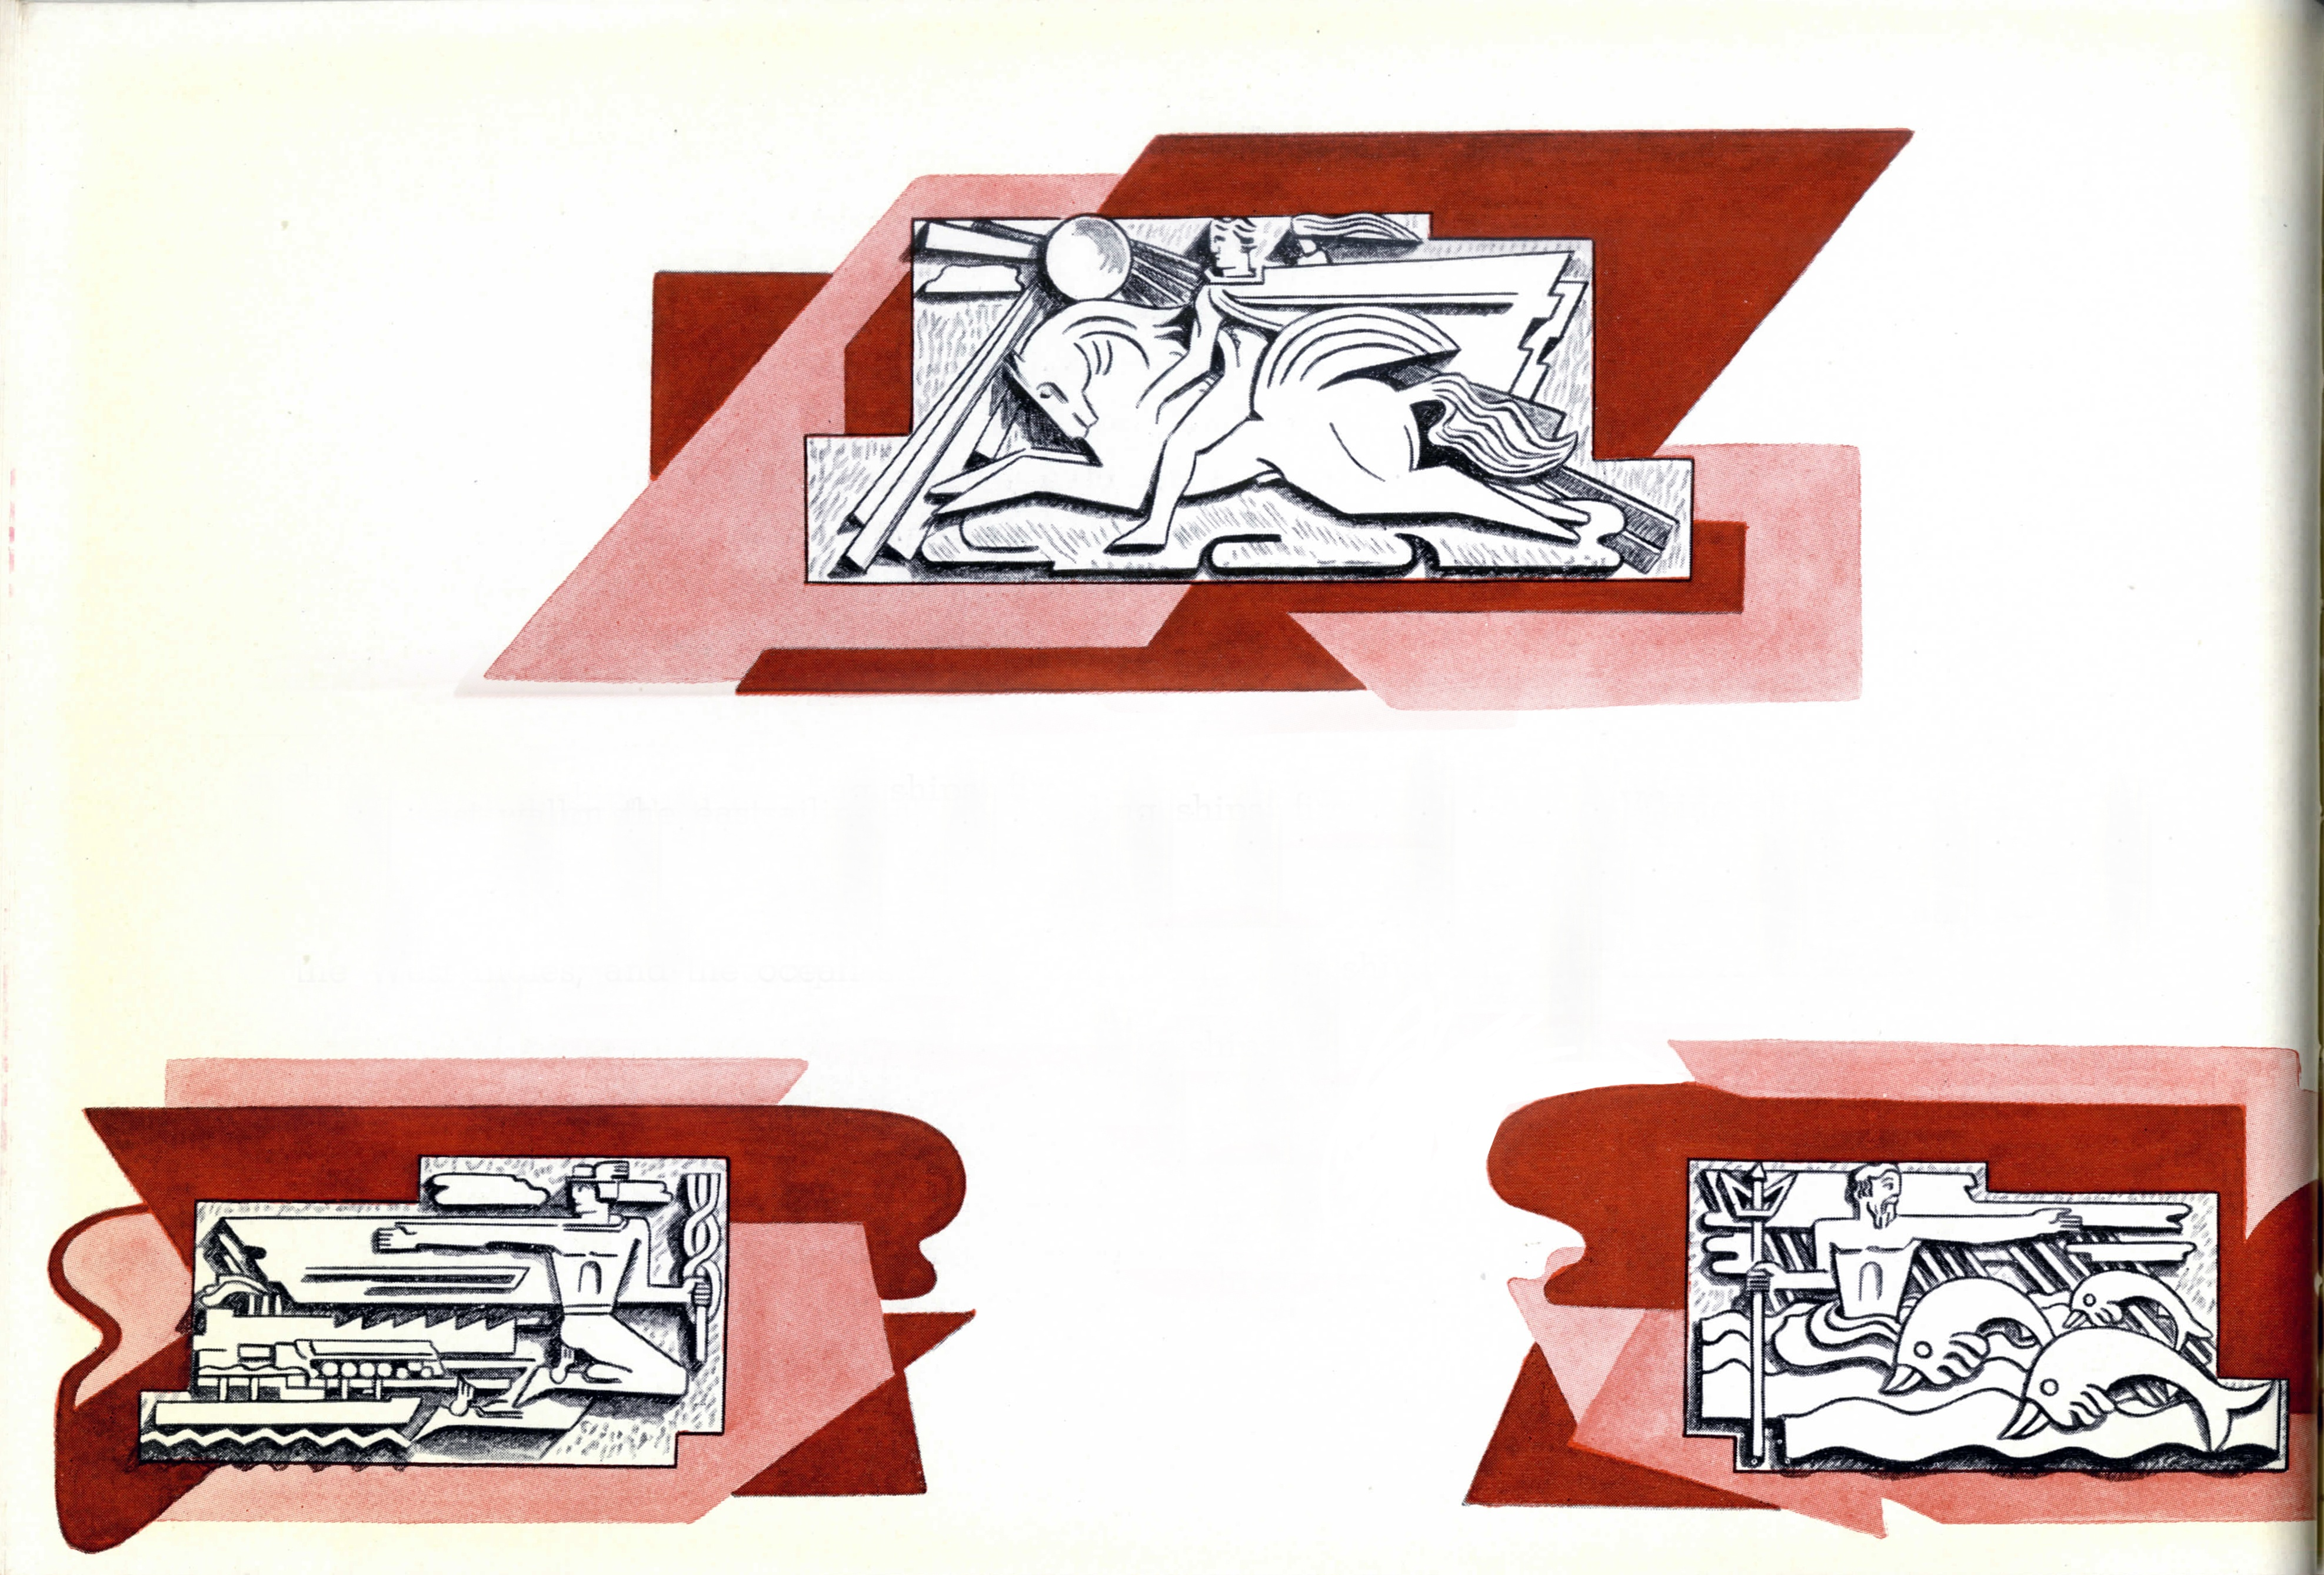 Bas-Relief Works by Brandtner at the CN Montreal Terminal